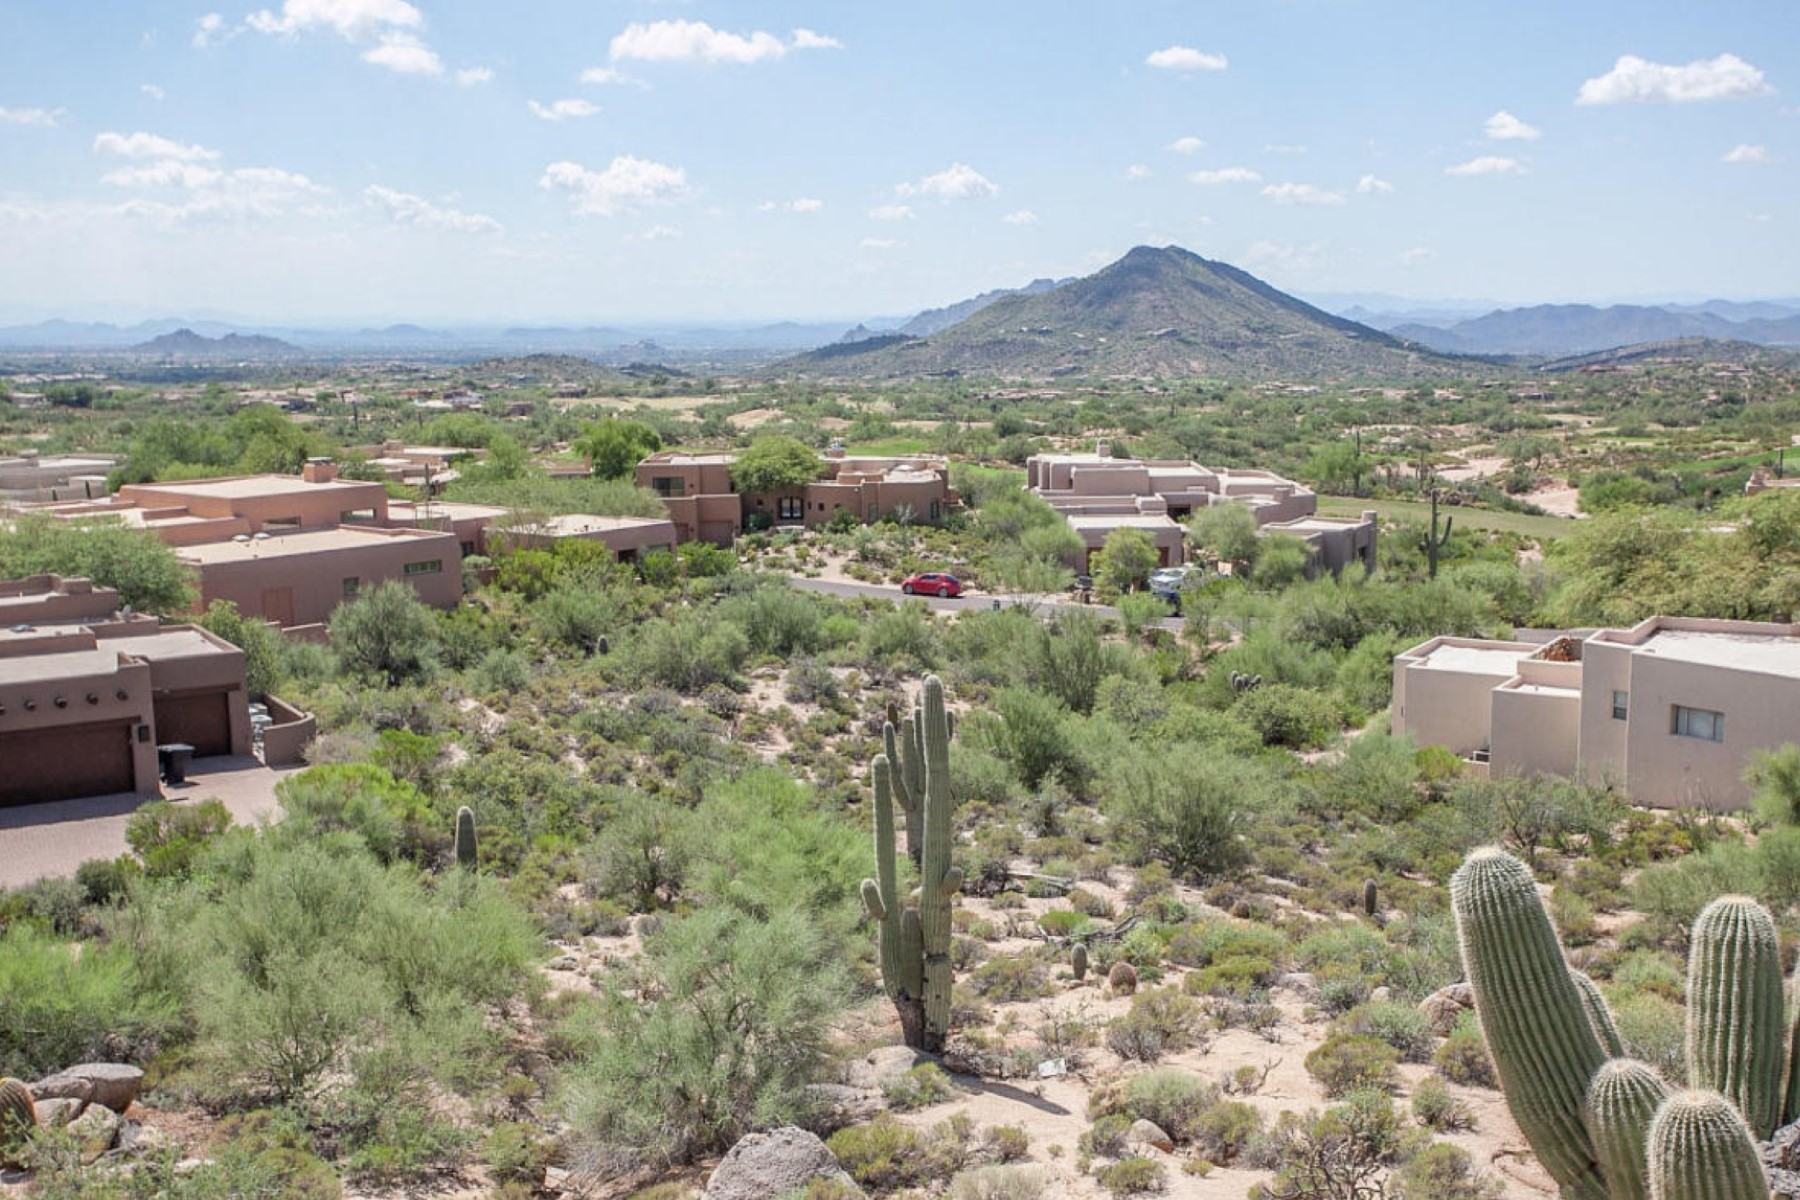 Terreno por un Venta en Custom Homesite In The Beautiful Village Of Rose Quartz At Desert Mountain 10664 E Prospect Point Dr #41 Scottsdale, Arizona, 85262 Estados Unidos